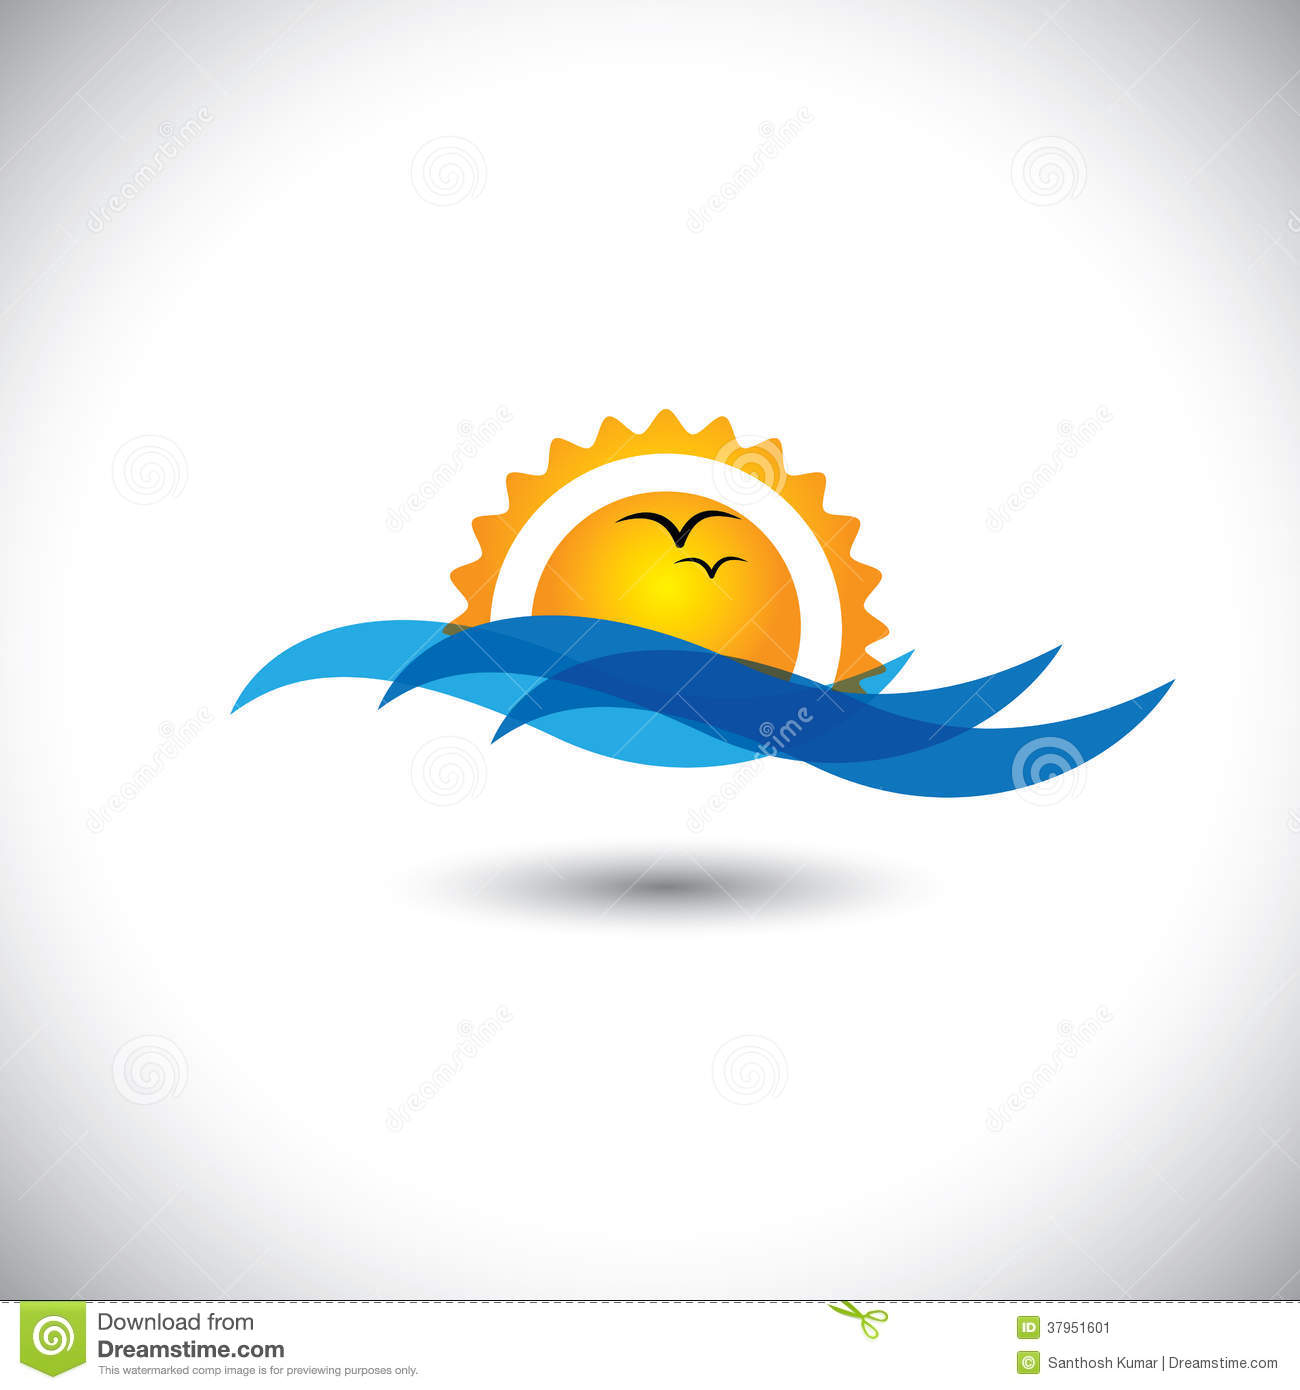 Ocean Concept Vector - Beautiful Morning Sunrise, Waves & Birds Stock ...